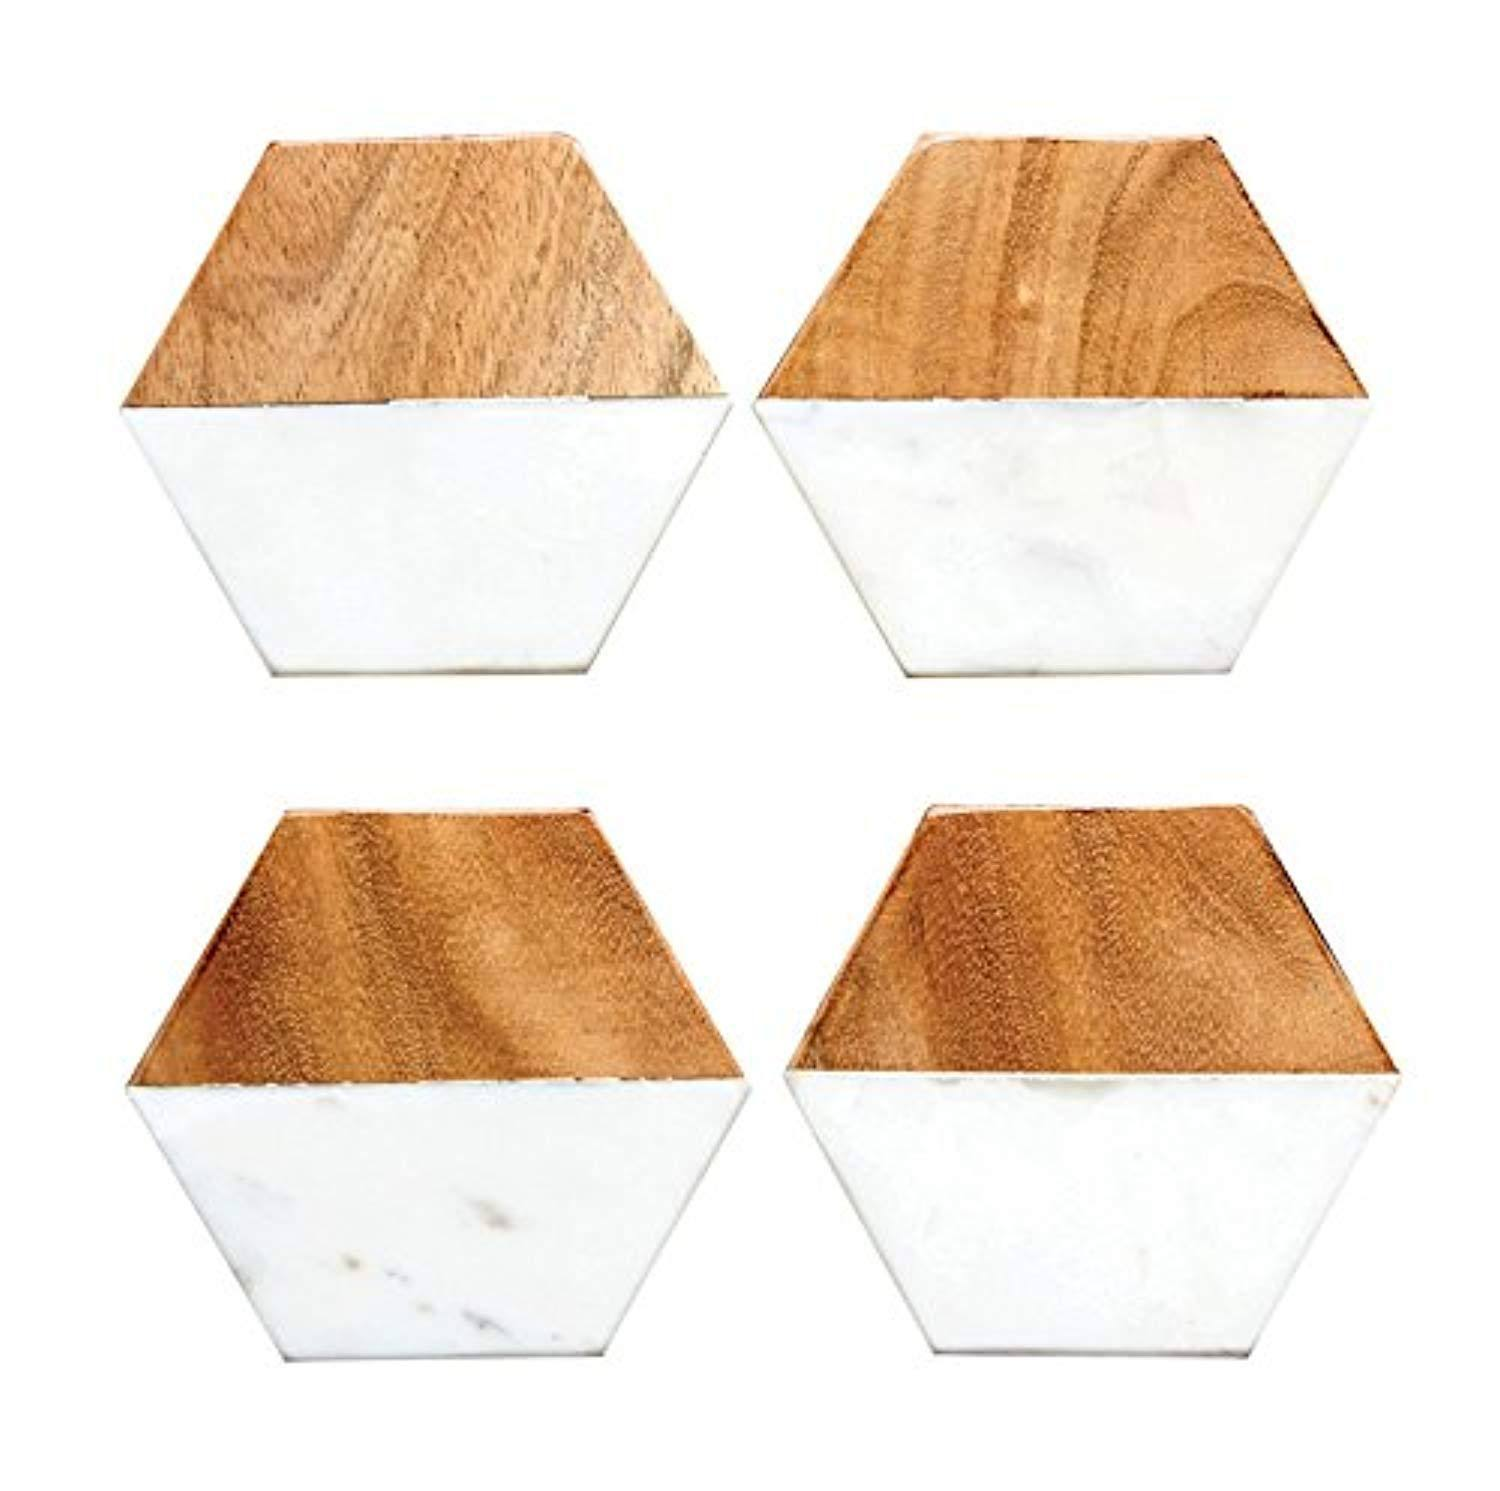 "Creative Co-Op Hexagon Marble and Wood Coaster Set - 4"", 4 Pieces"